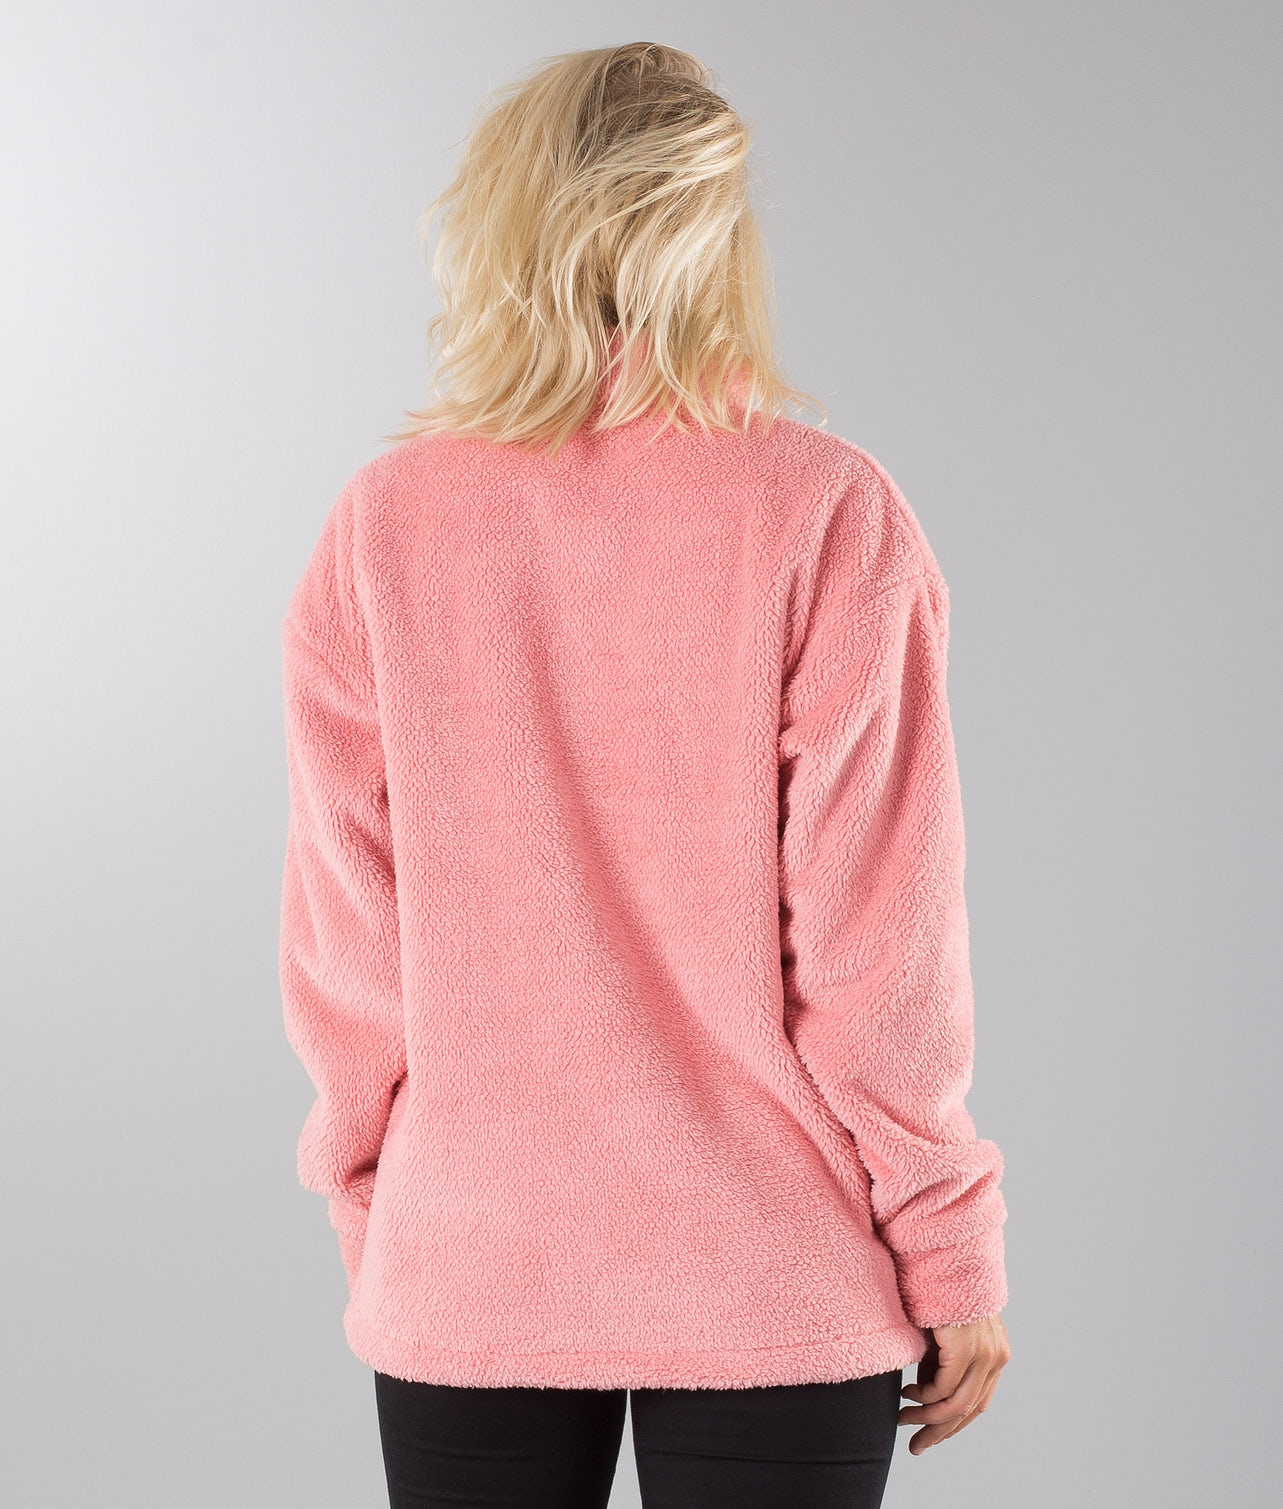 Buy Pile Snow Sweater from Dope at Ridestore.com - Always free shipping, free returns and 30 days money back guarantee